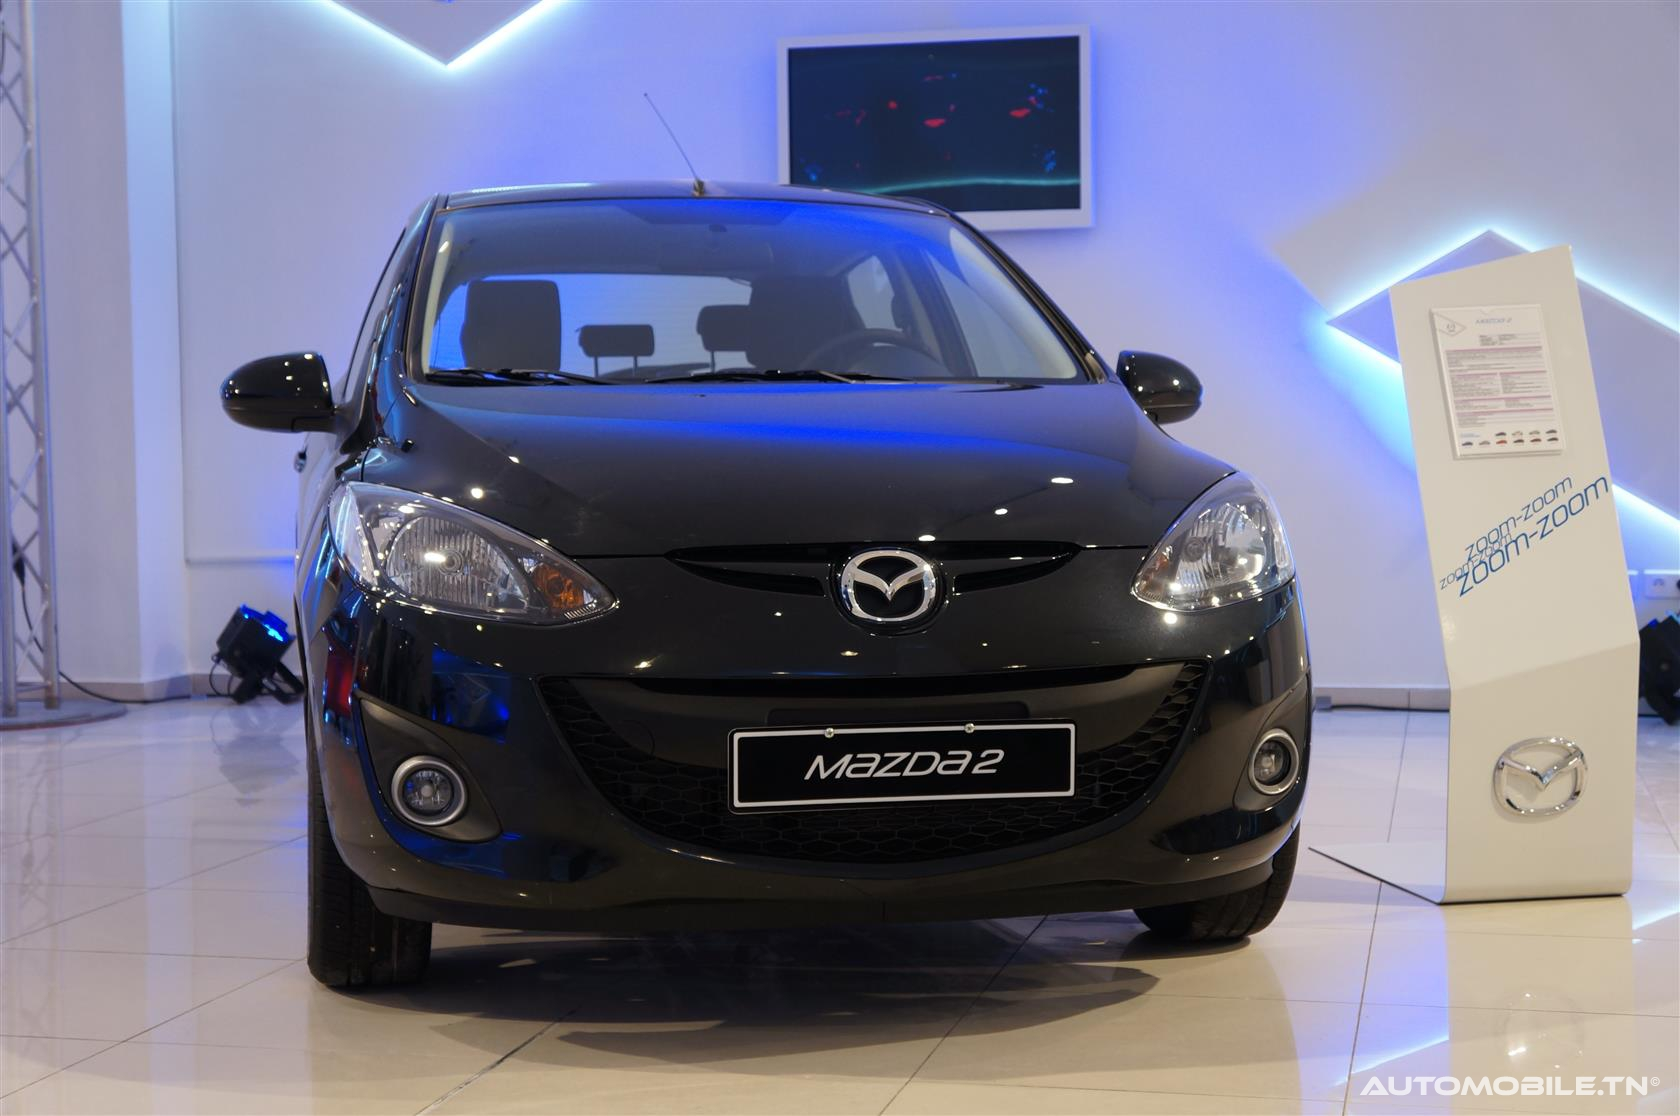 nouveaut s economic auto compl te sa gamme avec la mazda2. Black Bedroom Furniture Sets. Home Design Ideas